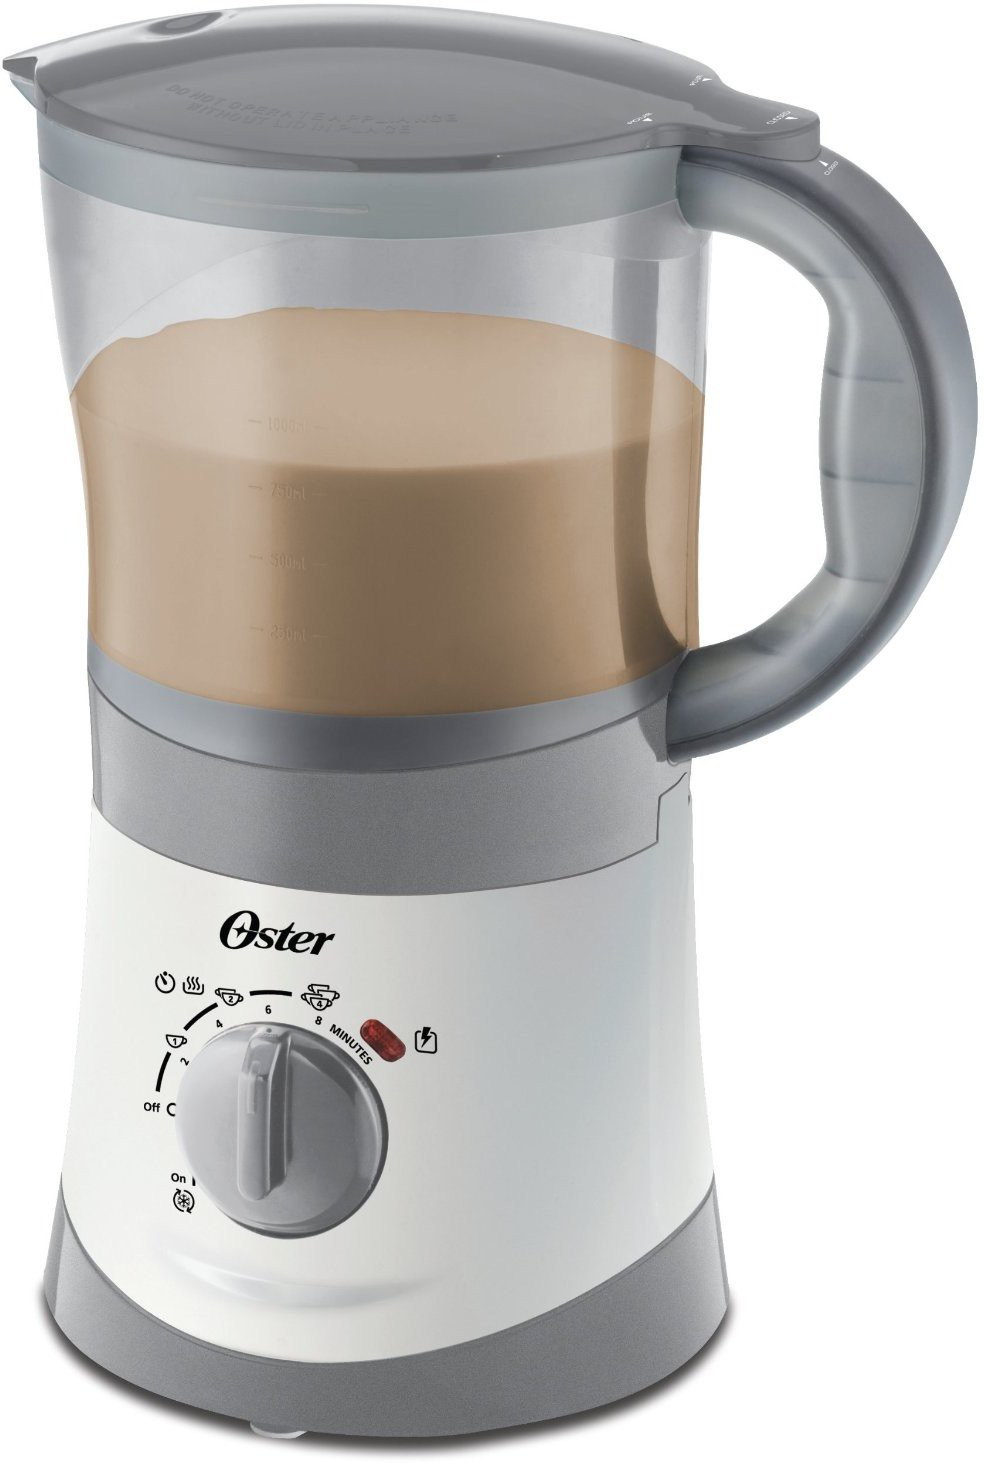 Filter Coffee Maker Flipkart : Oster BVSTHT6505 Coffee Maker Price in India - Buy Oster BVSTHT6505 Coffee Maker Online at ...